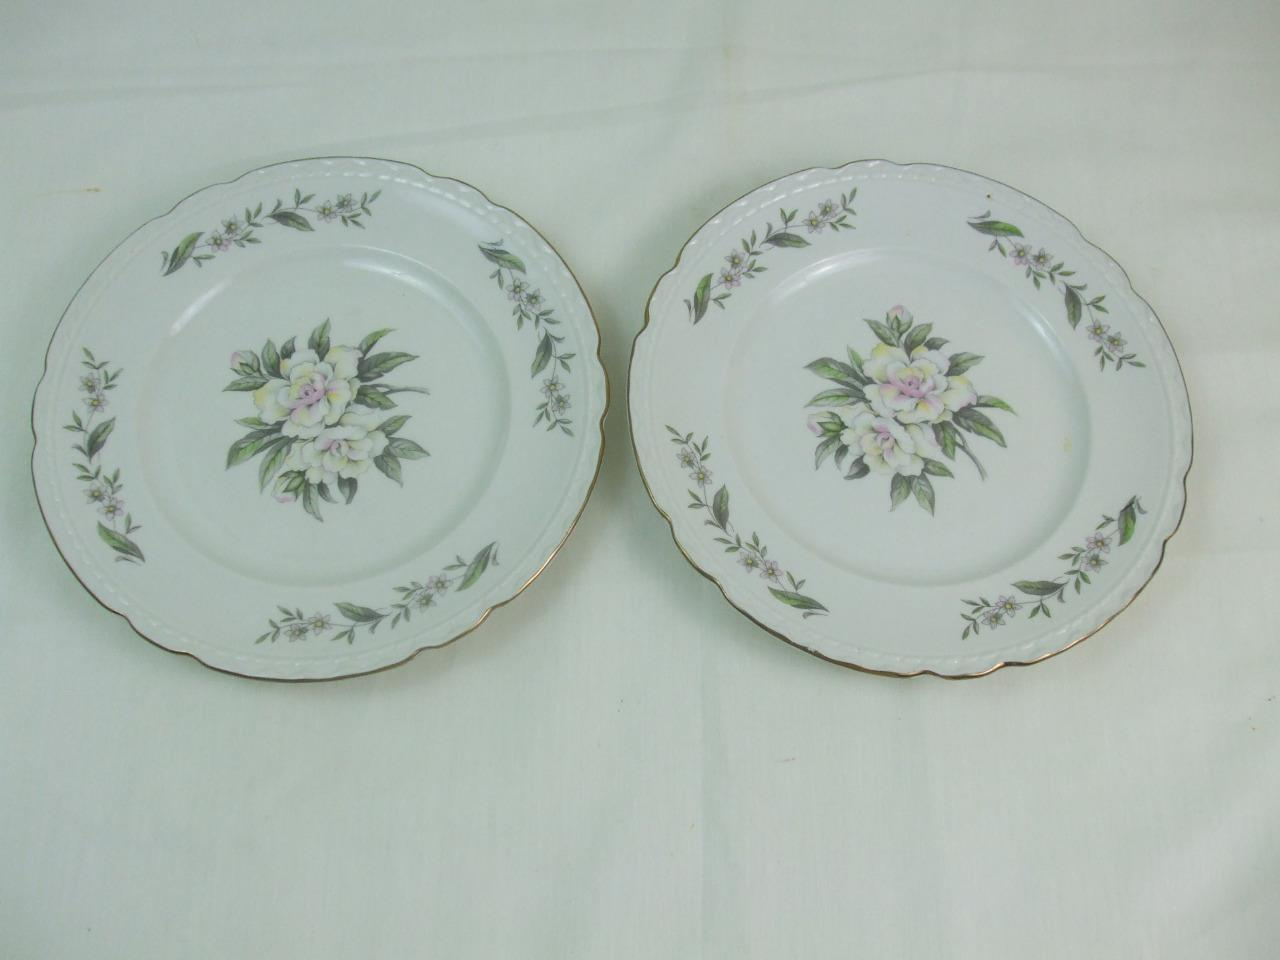 Primary image for 2 Salad Plates Gardenia Pattern Gold Scalloped Edges Embassy USA Vitrified China